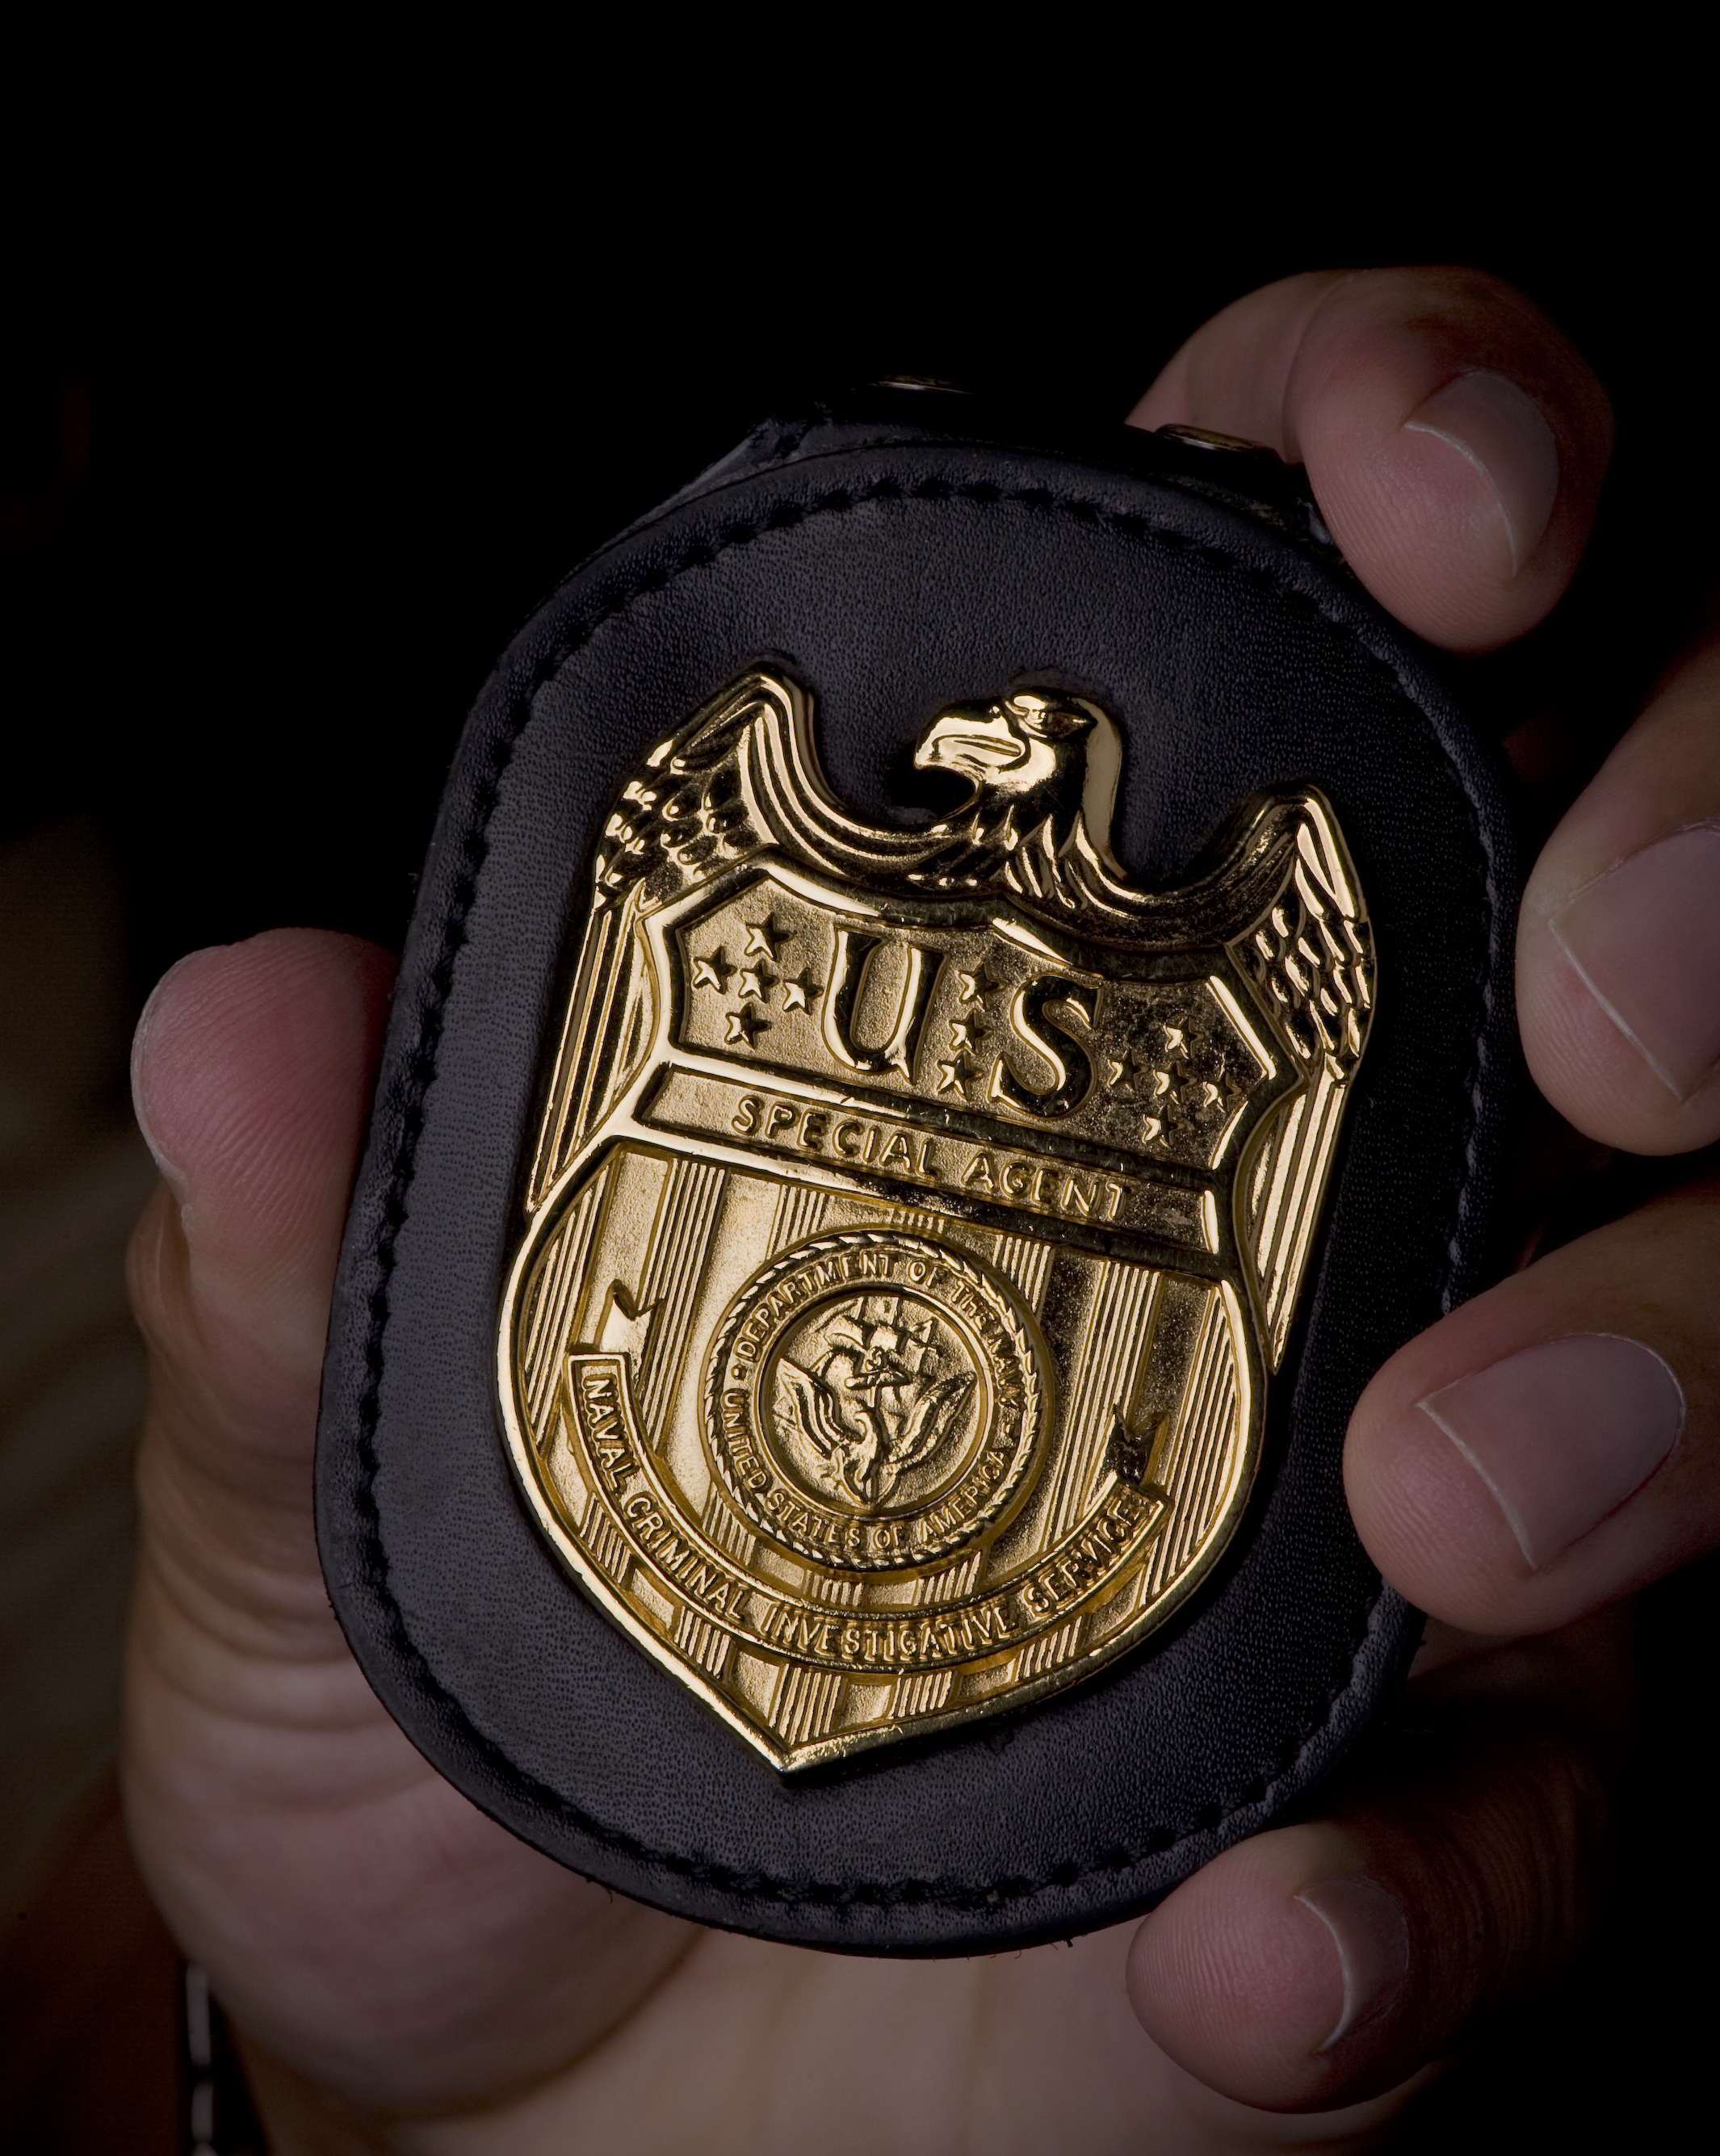 Ncis ID Badge http://commons.wikimedia.org/wiki/File:NCIS_Badge_in_hand.jpg